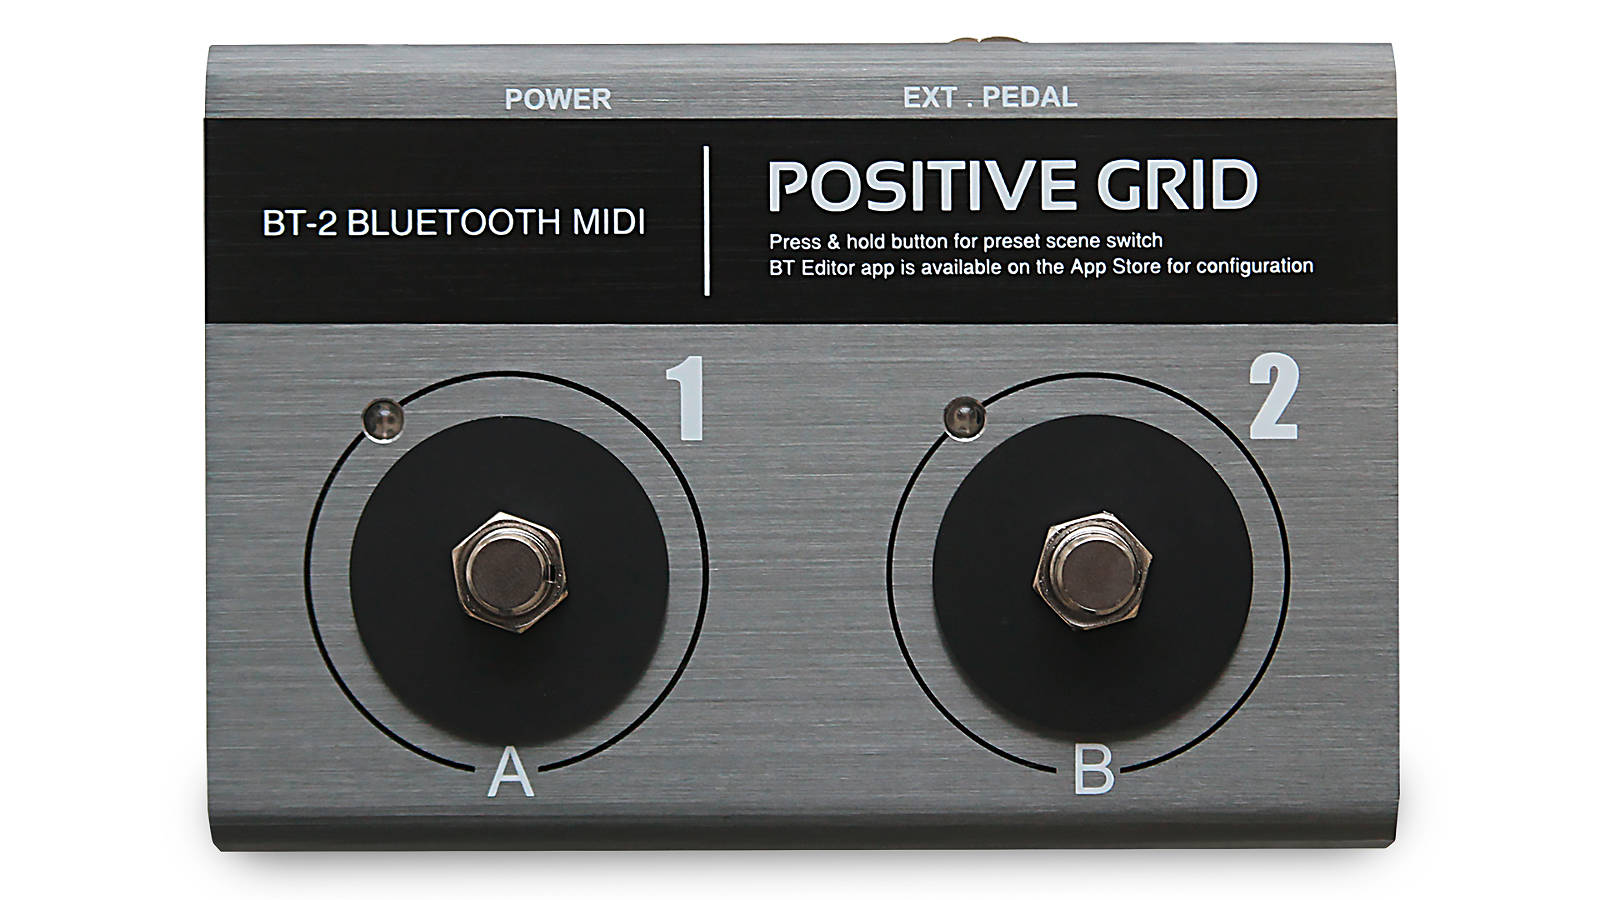 Positive Grid BT2 Bluetooth MIDI 2-fach Fußschalter